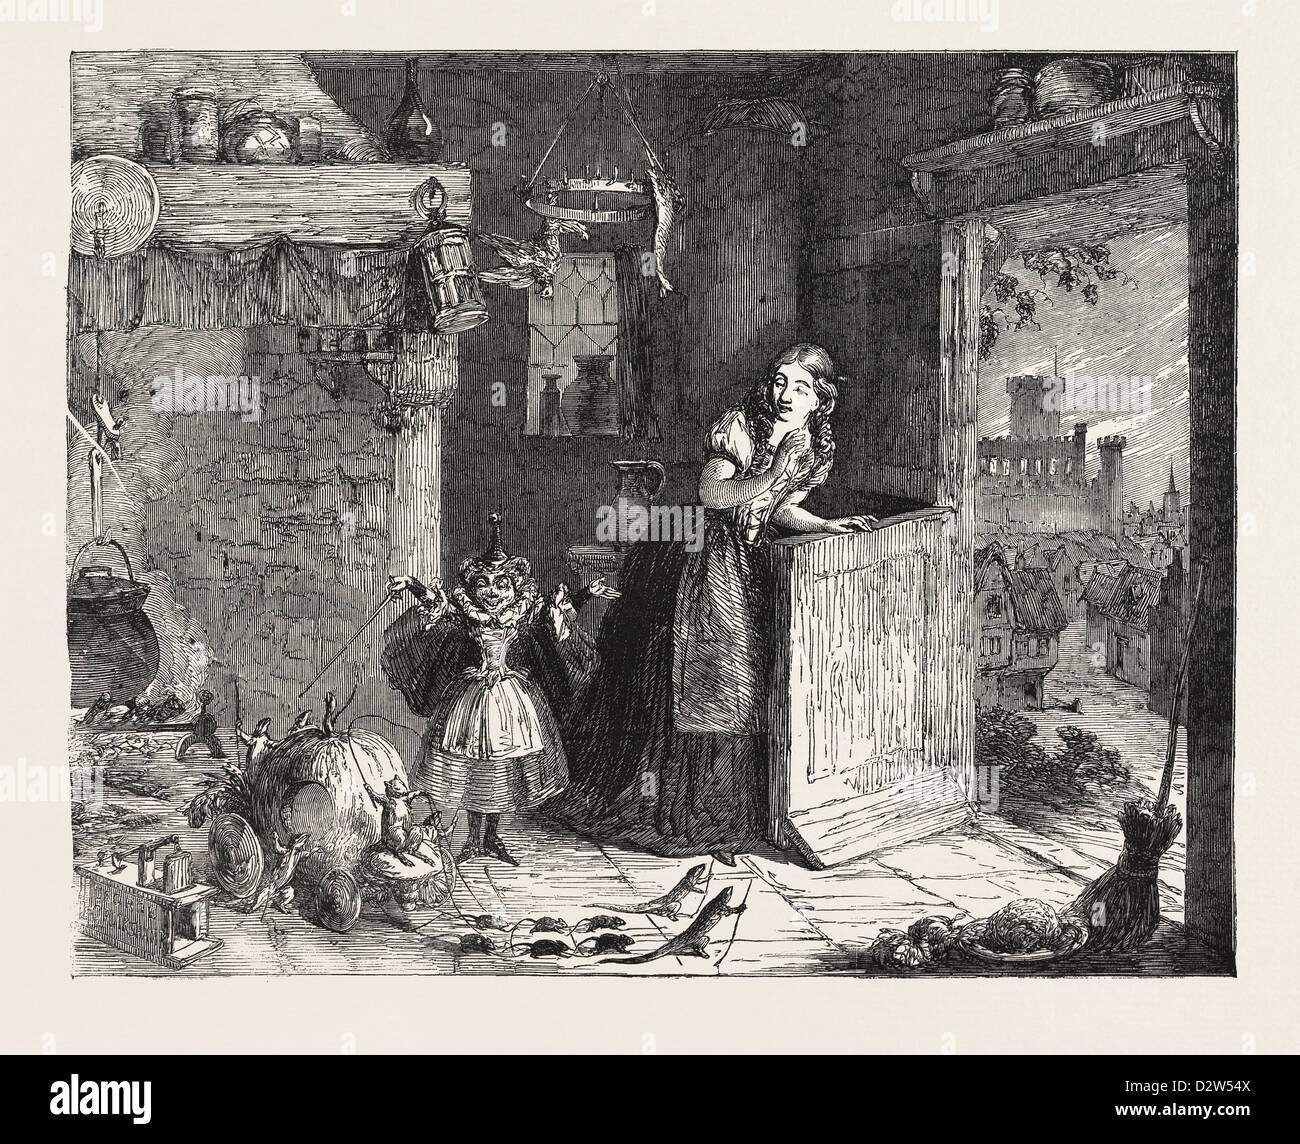 CINDERELLA PAINTED BY GEORGE CRUIKSHANK FROM THE EXHIBITION OF THE ROYAL ACADEMY 1854 - Stock Image